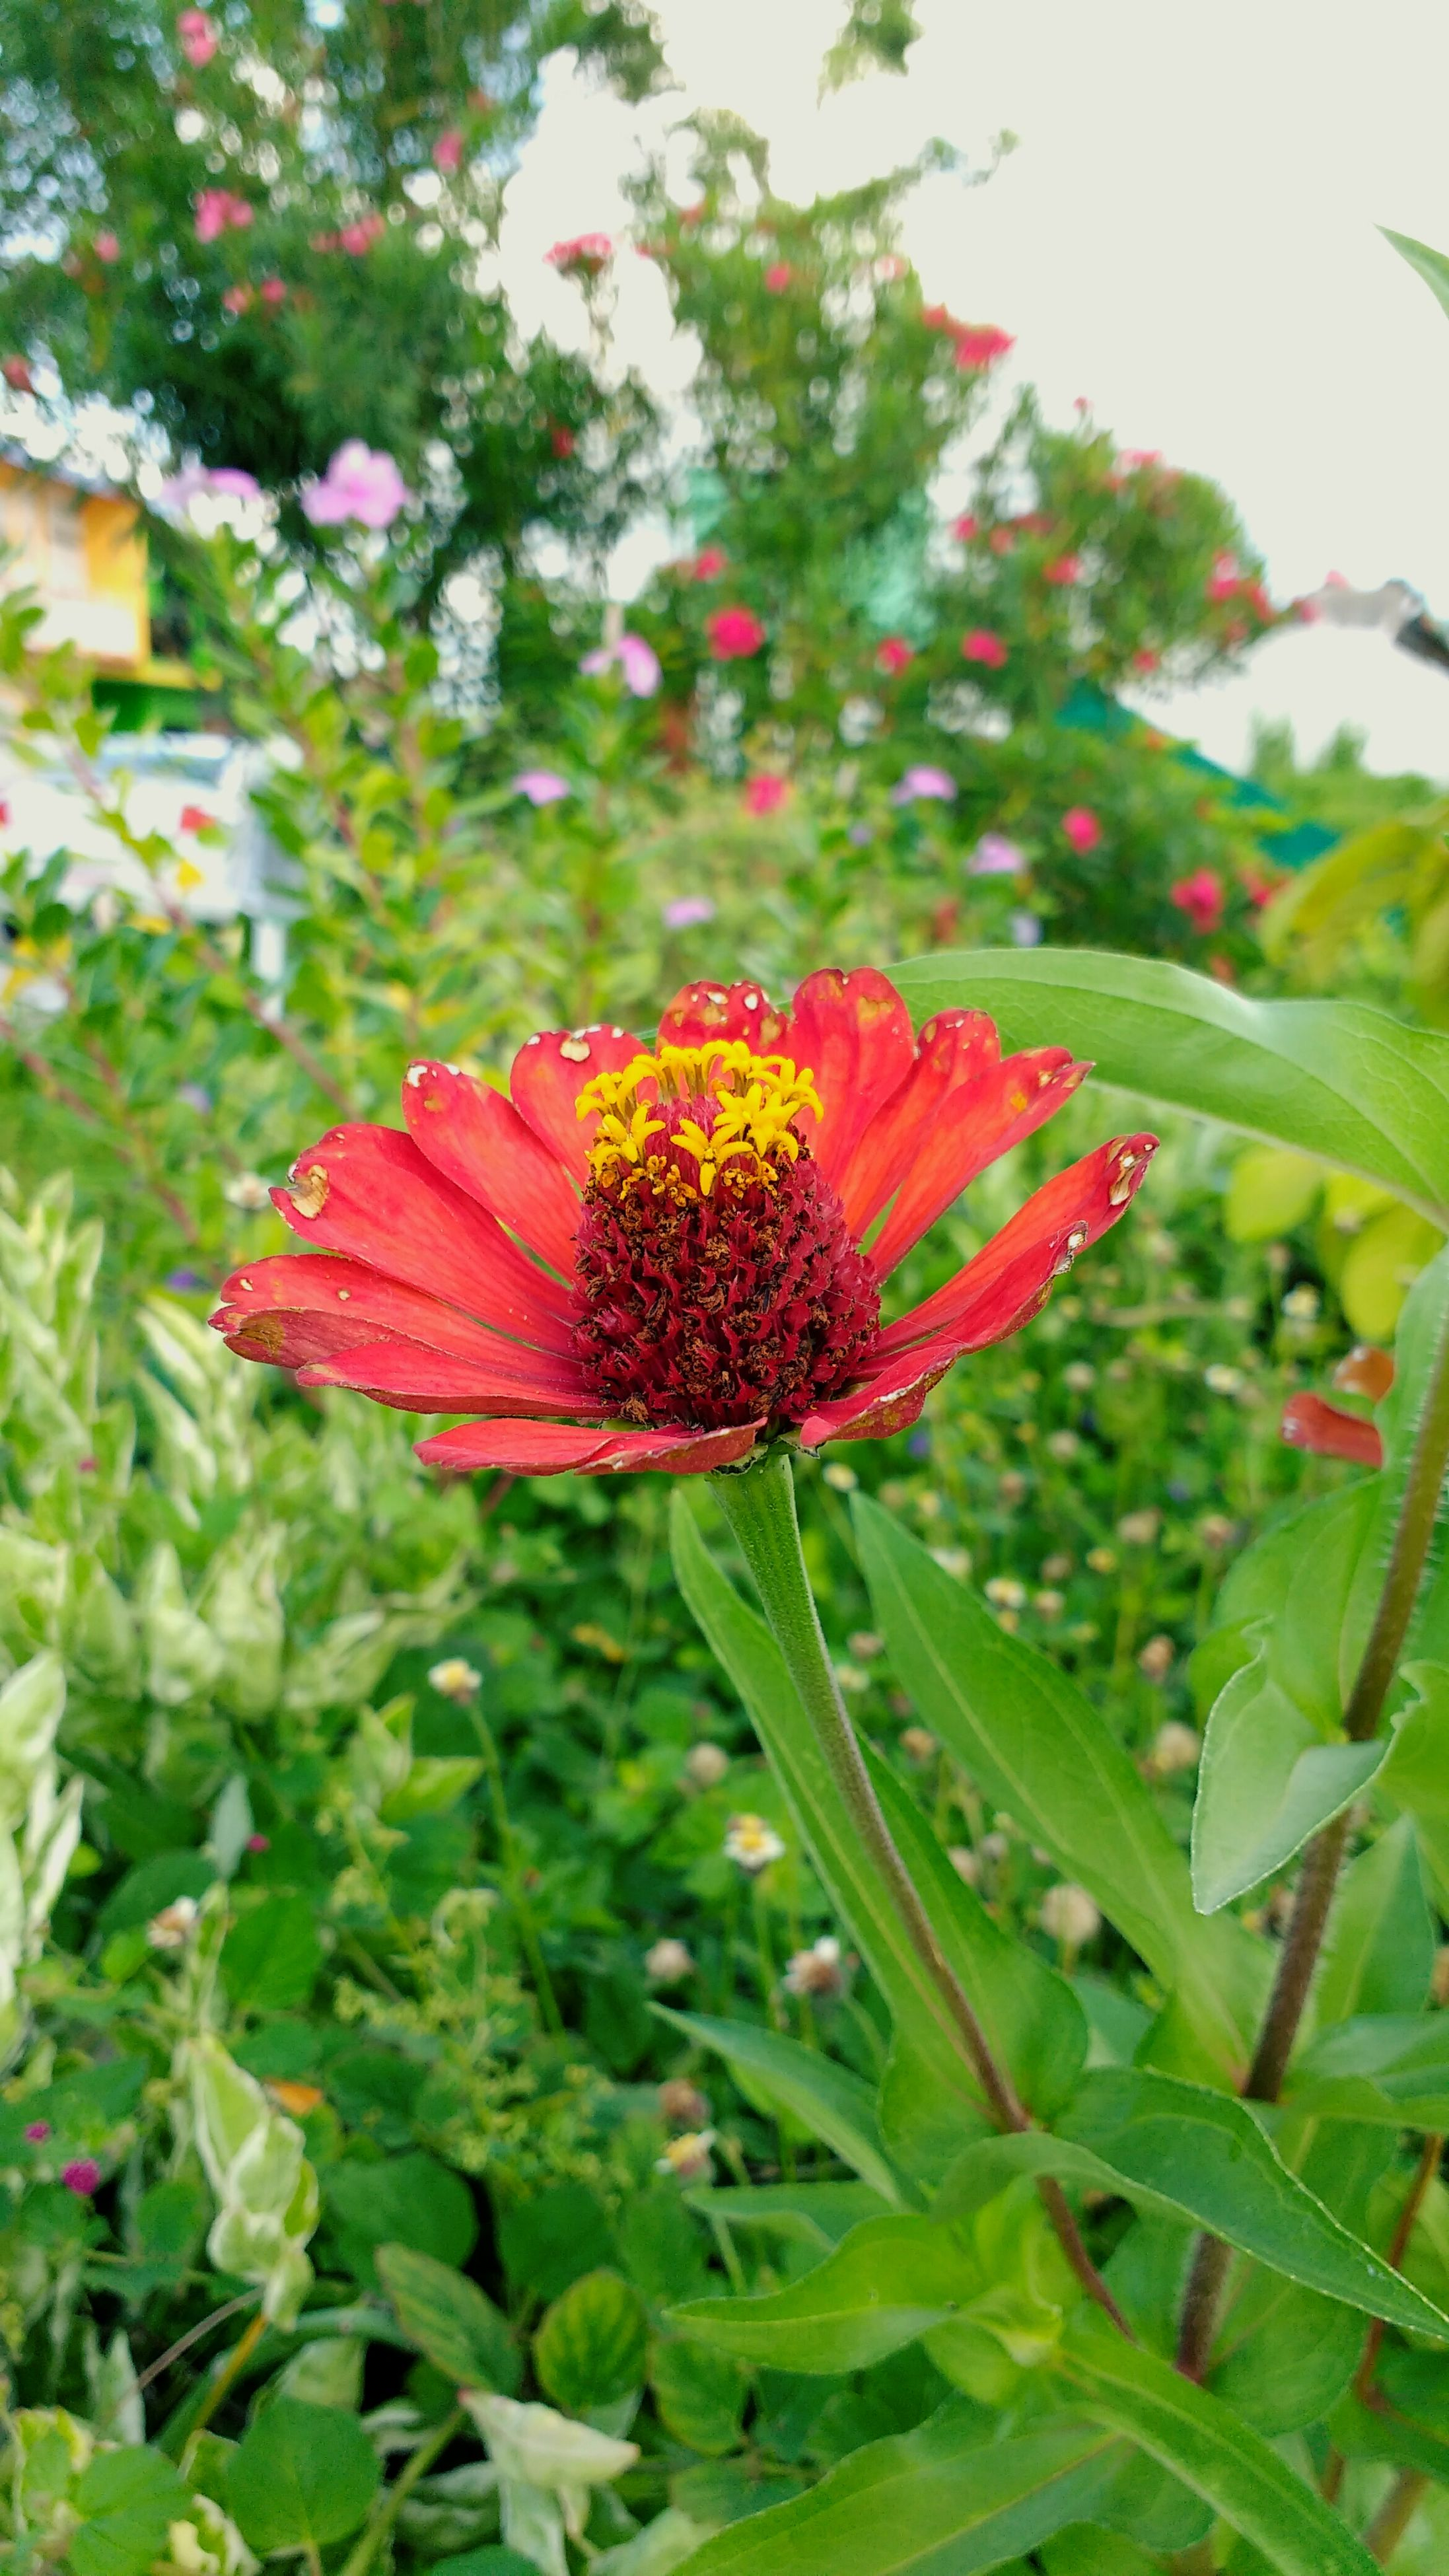 flower, freshness, fragility, growth, petal, flower head, beauty in nature, close-up, focus on foreground, red, nature, single flower, vibrant color, springtime, in bloom, blossom, stamen, plant, park - man made space, botany, green color, blooming, day, pollen, outdoors, exoticism, bloom, no people, coneflower